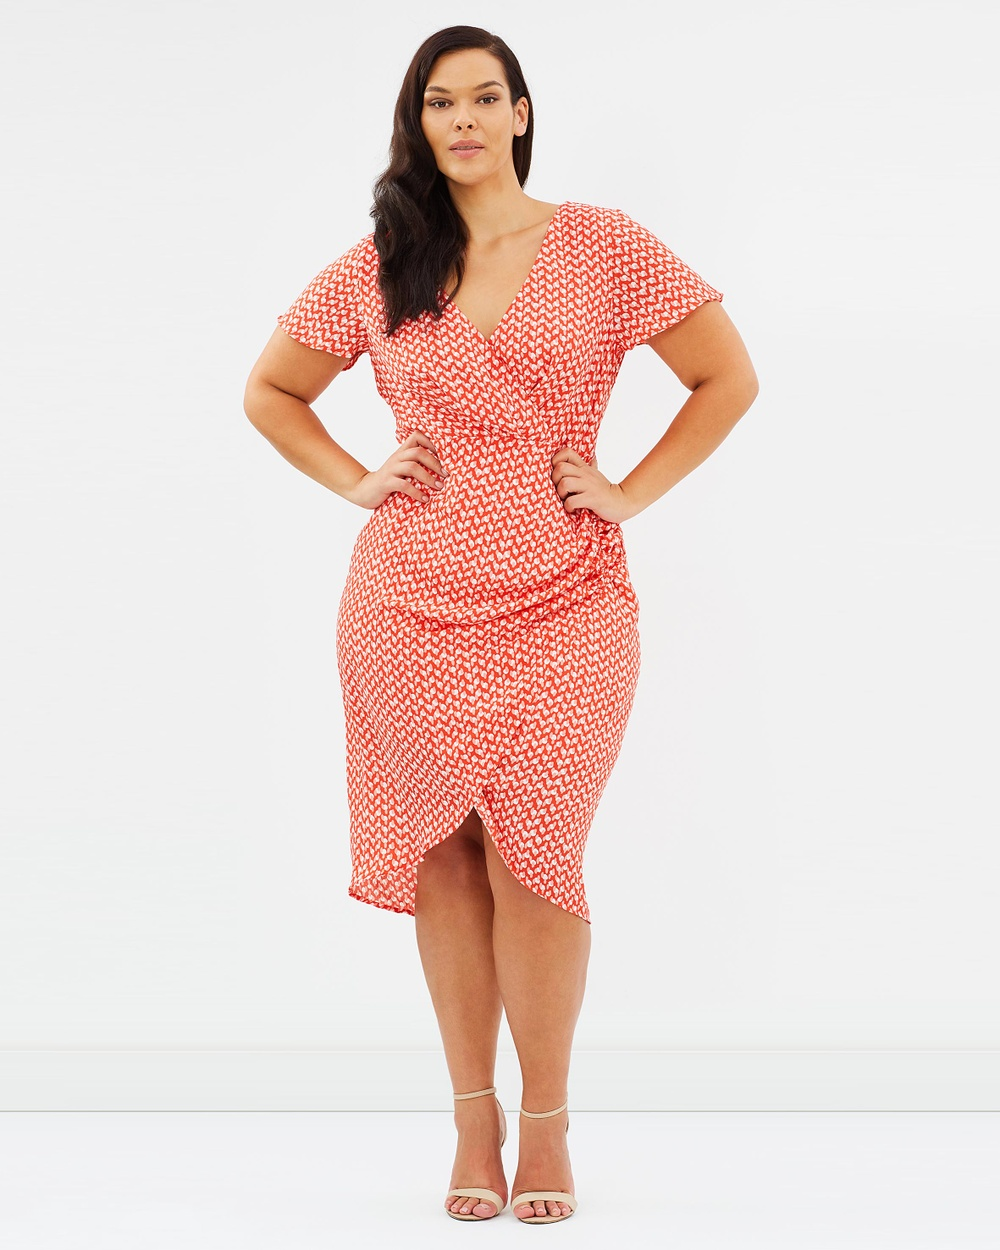 Atmos & Here Curvy ICONIC EXCLUSIVE Valentina Gathered Midi Dress Printed Dresses Vintage Polka Dot ICONIC EXCLUSIVE Valentina Gathered Midi Dress